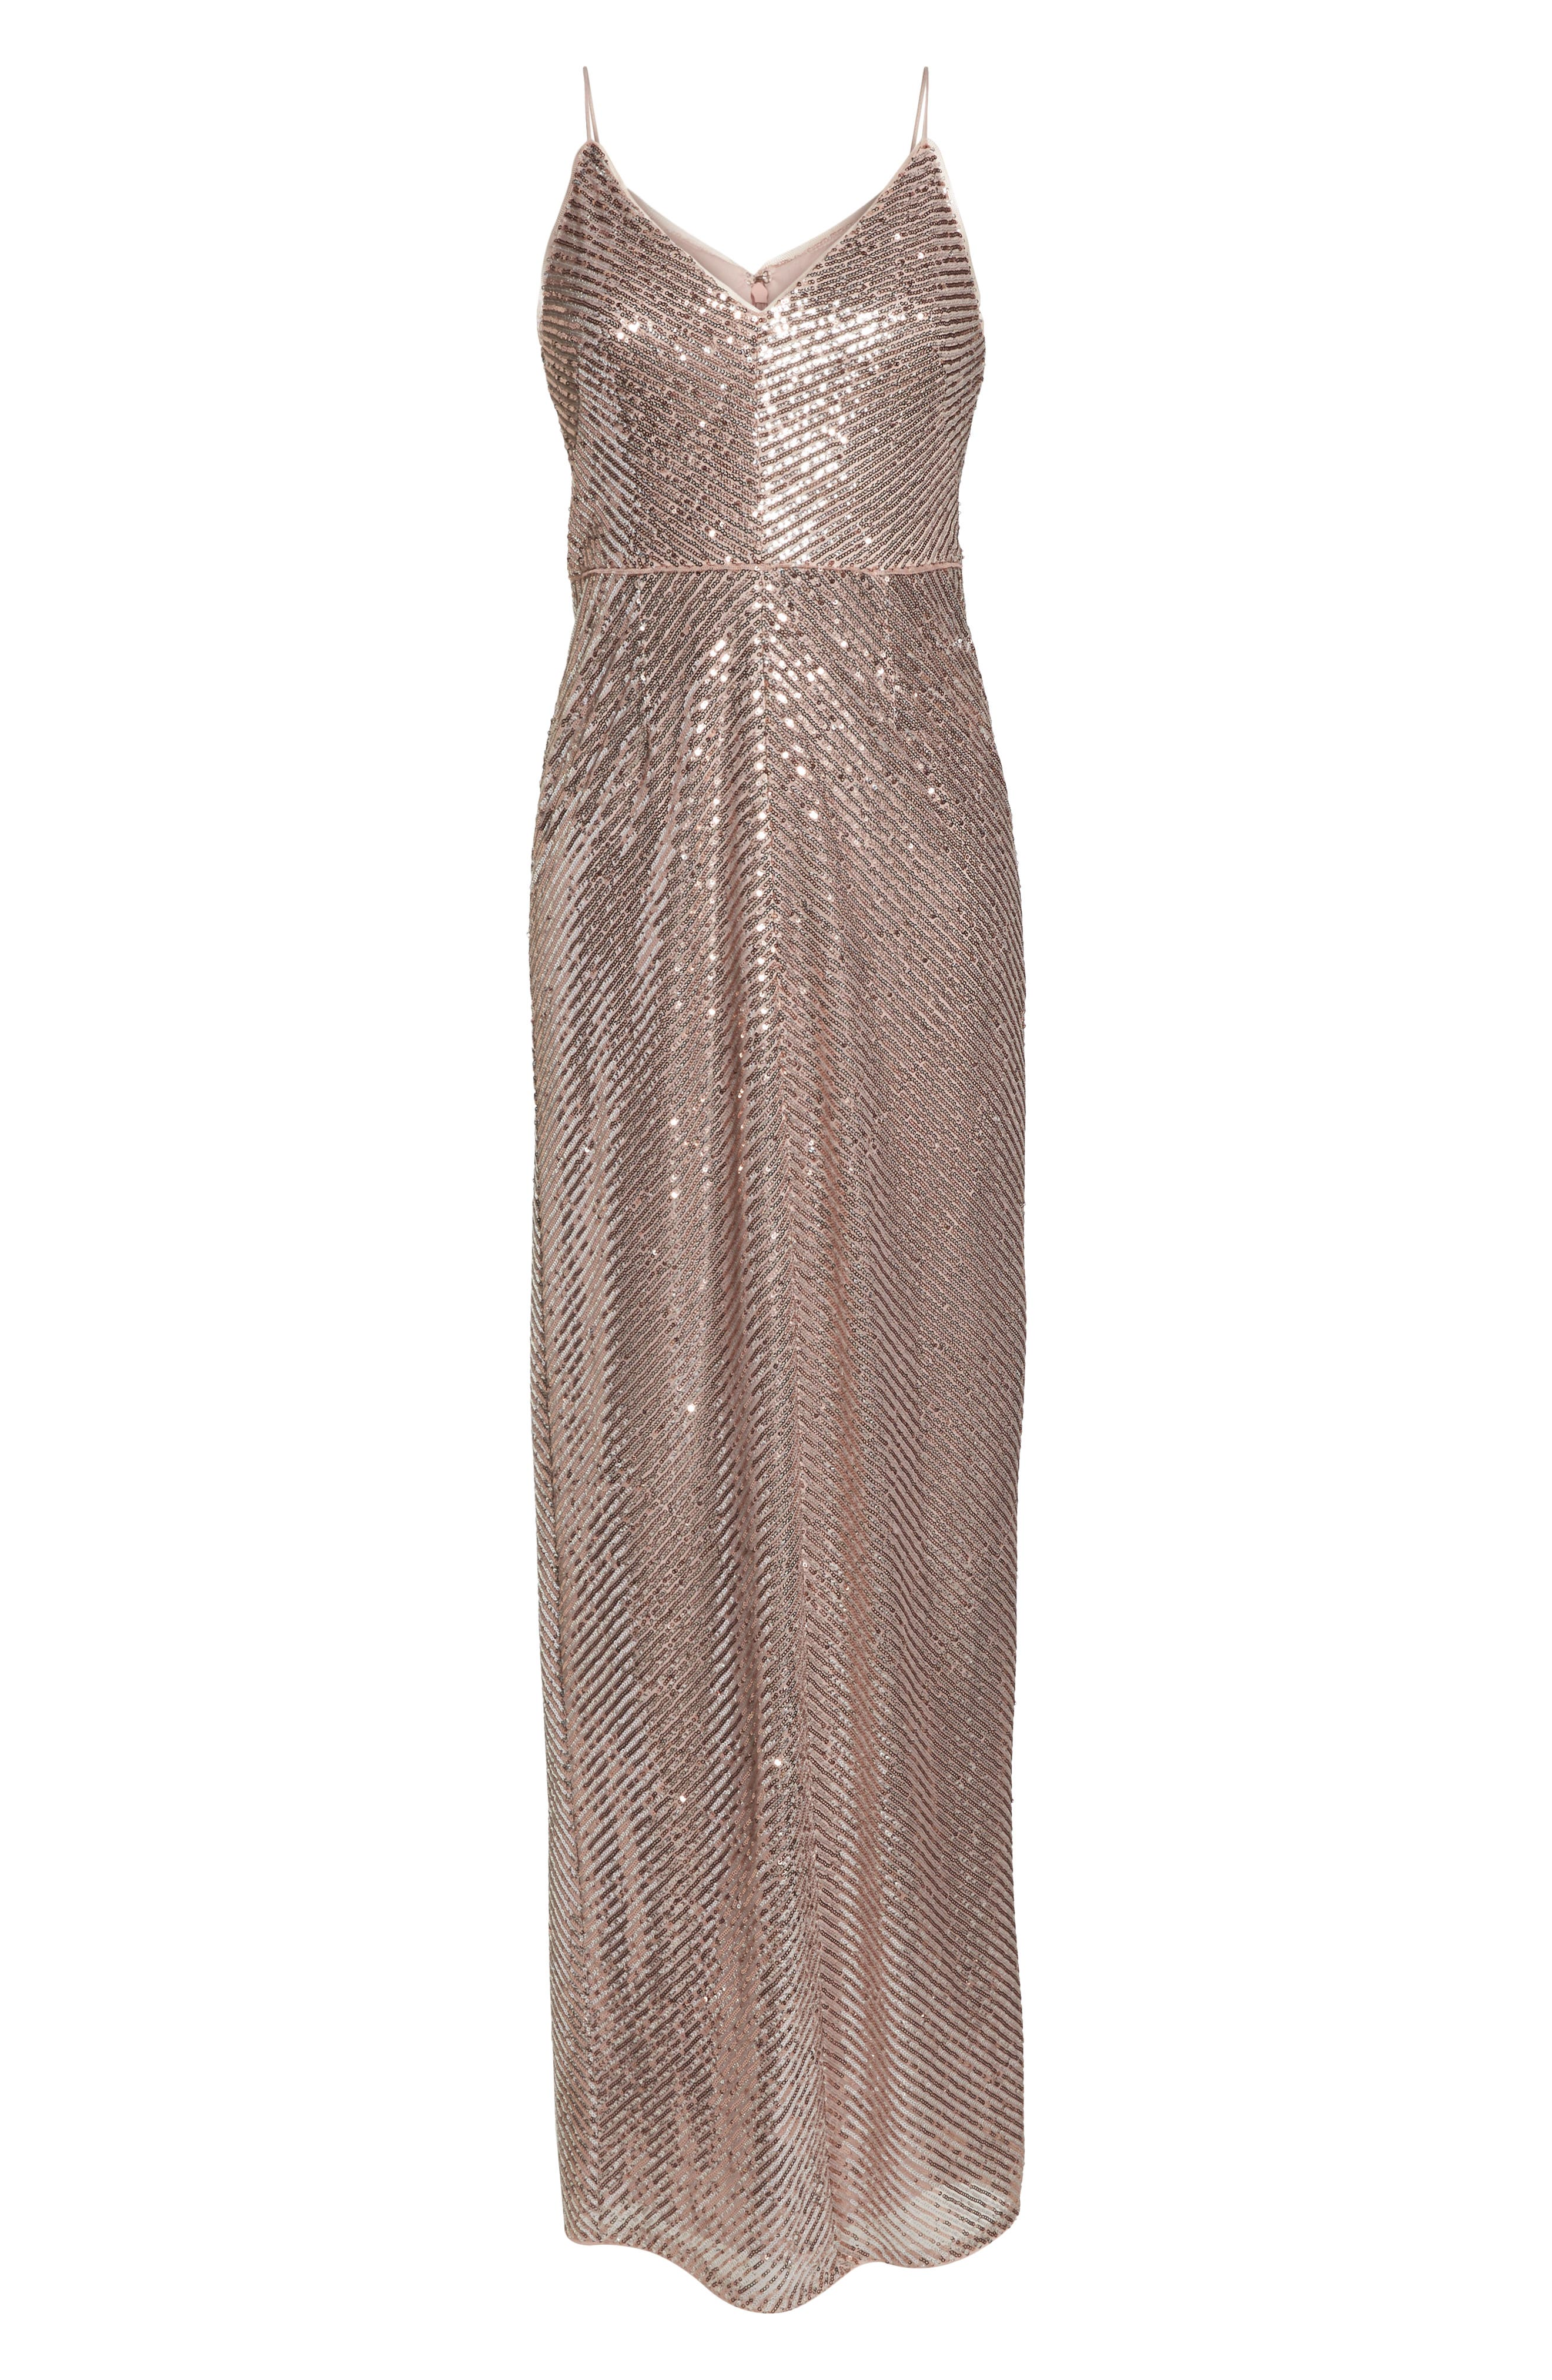 ADRIANNA PAPELL,                             Stripe Sequin Gown,                             Alternate thumbnail 6, color,                             680